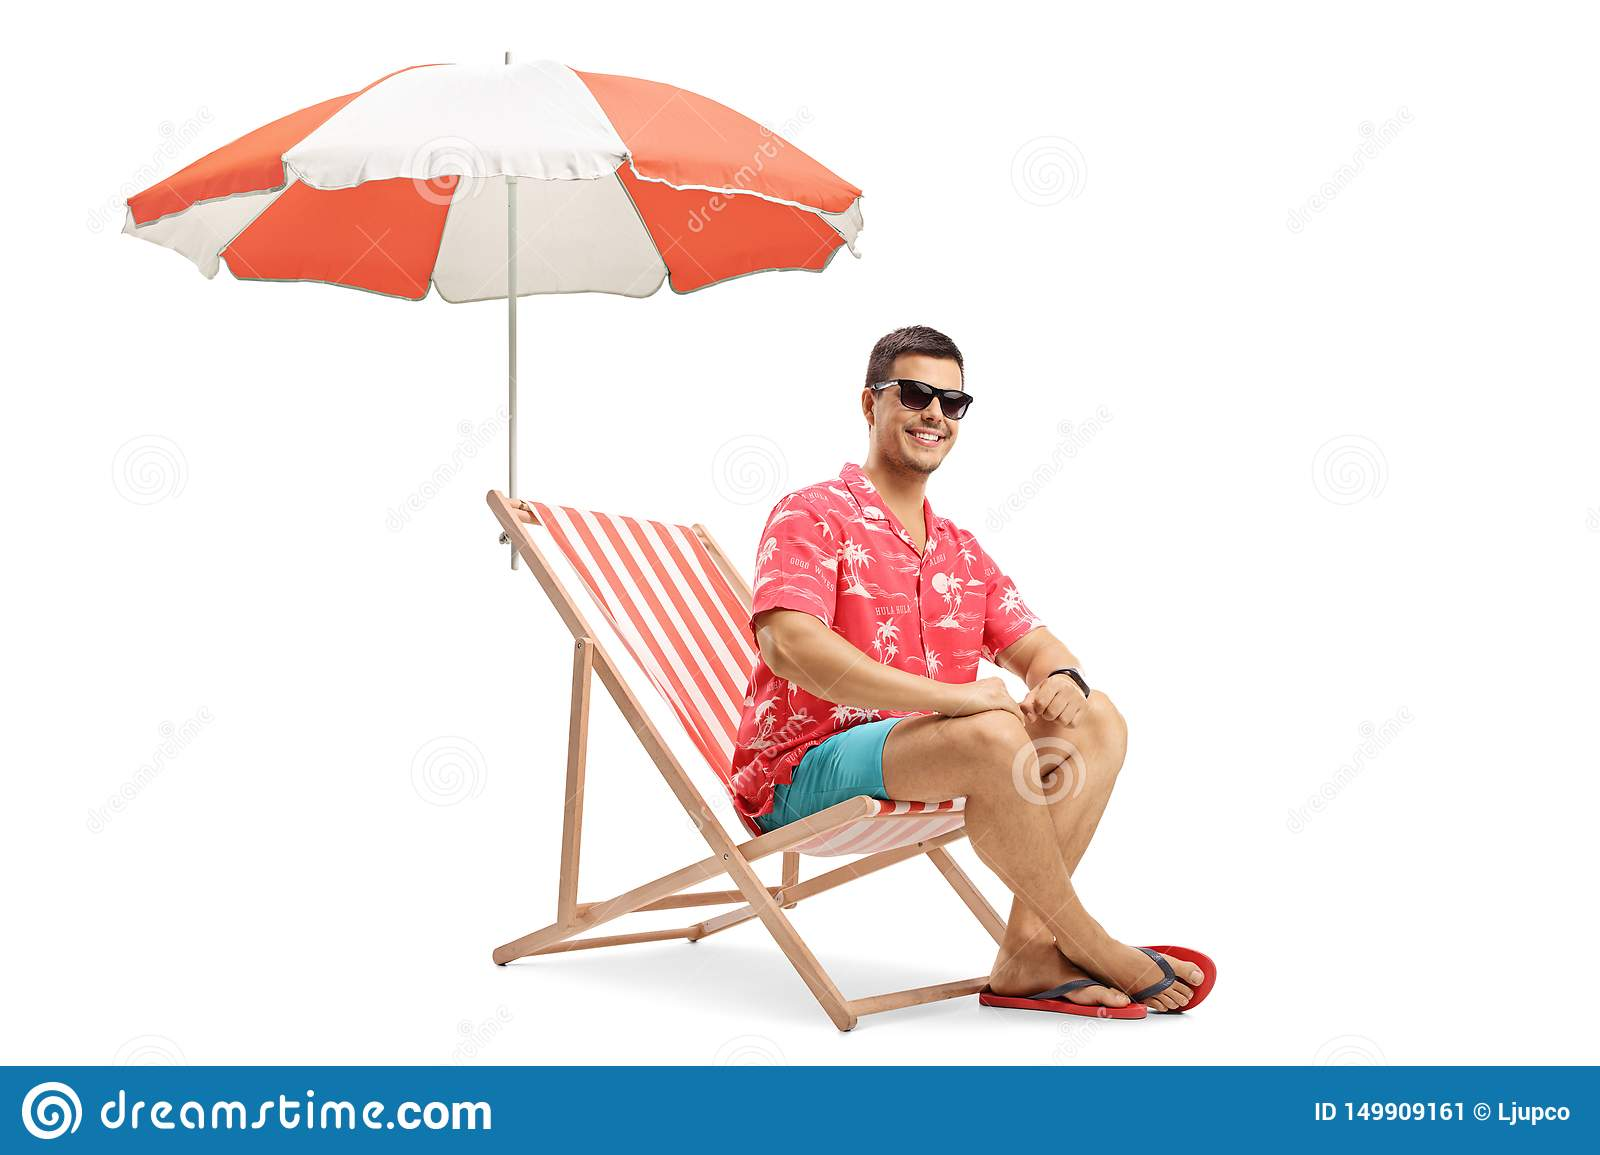 Young man sitting on a deckchair under an umbrella and smiling at the camera